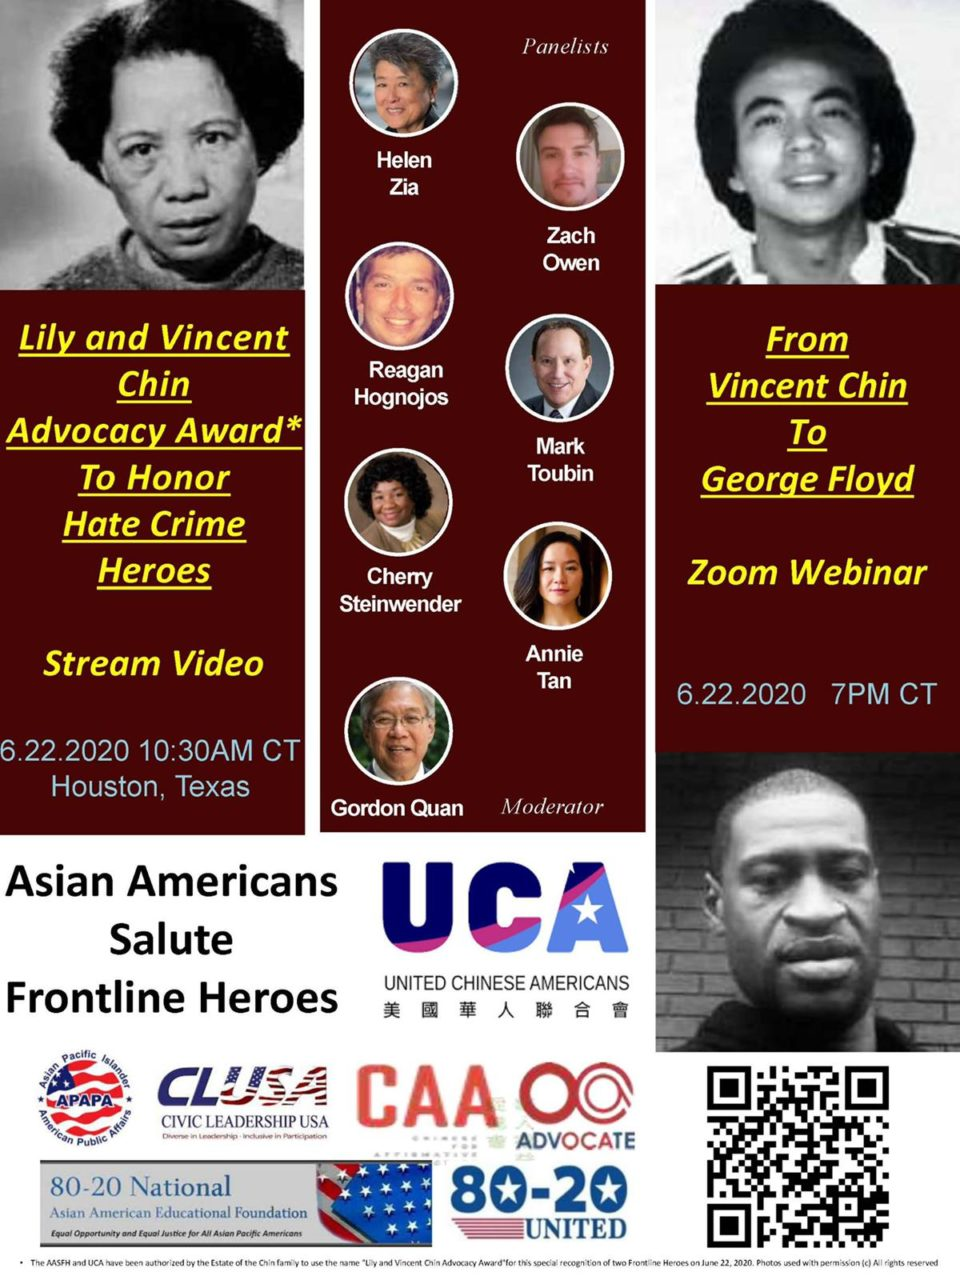 UCA to Join Asian American Communities in Honoring Heroes